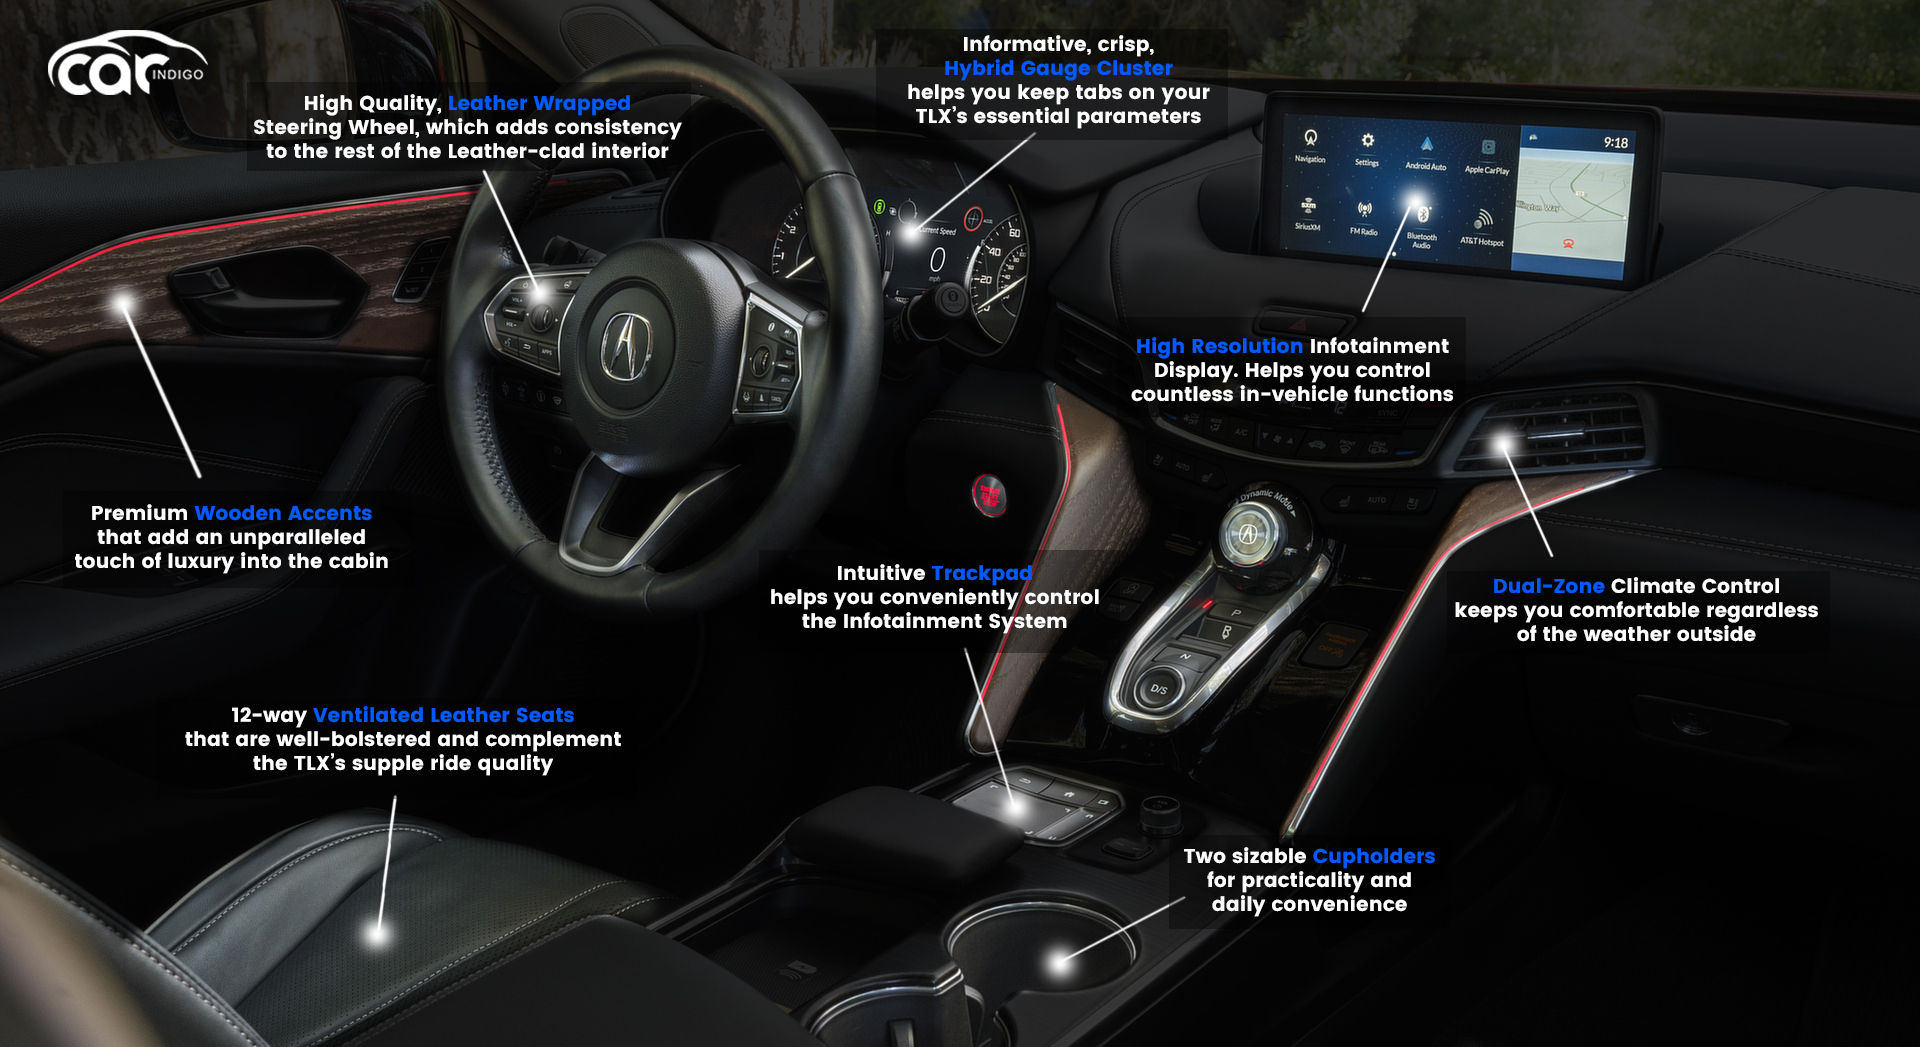 2021 Acura Tlx Interior Review Seating Infotainment Dashboard And Features Carindigo Com